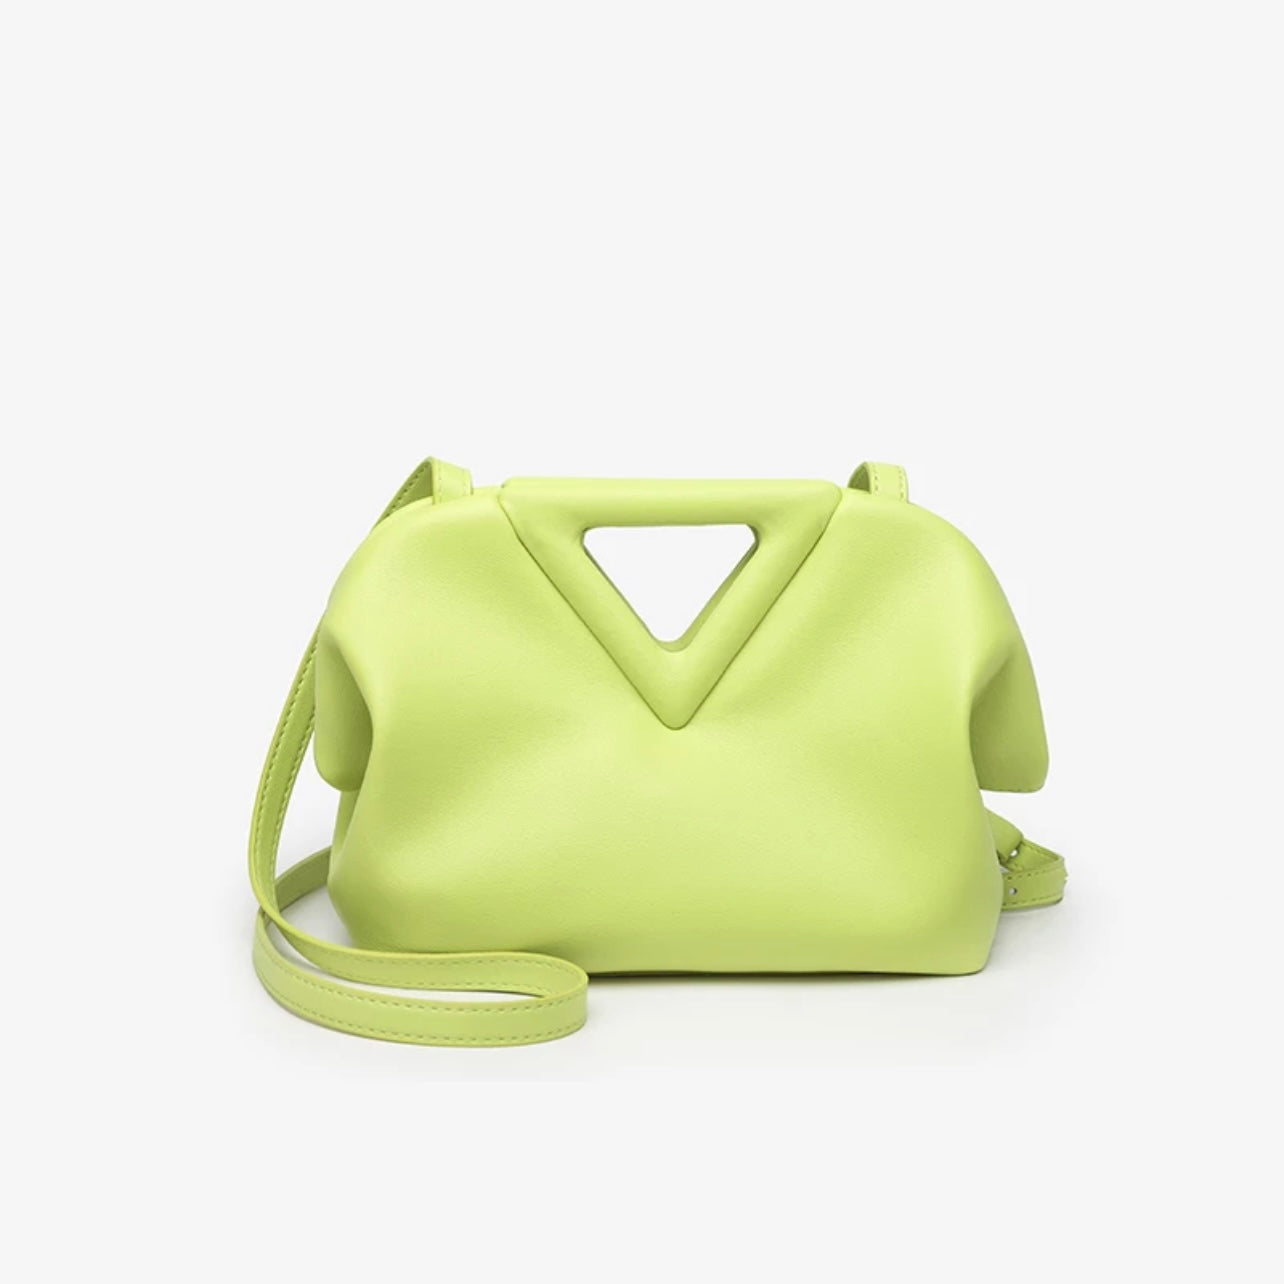 Alexa Bag - Soft Velvet - littletouch.co.uk